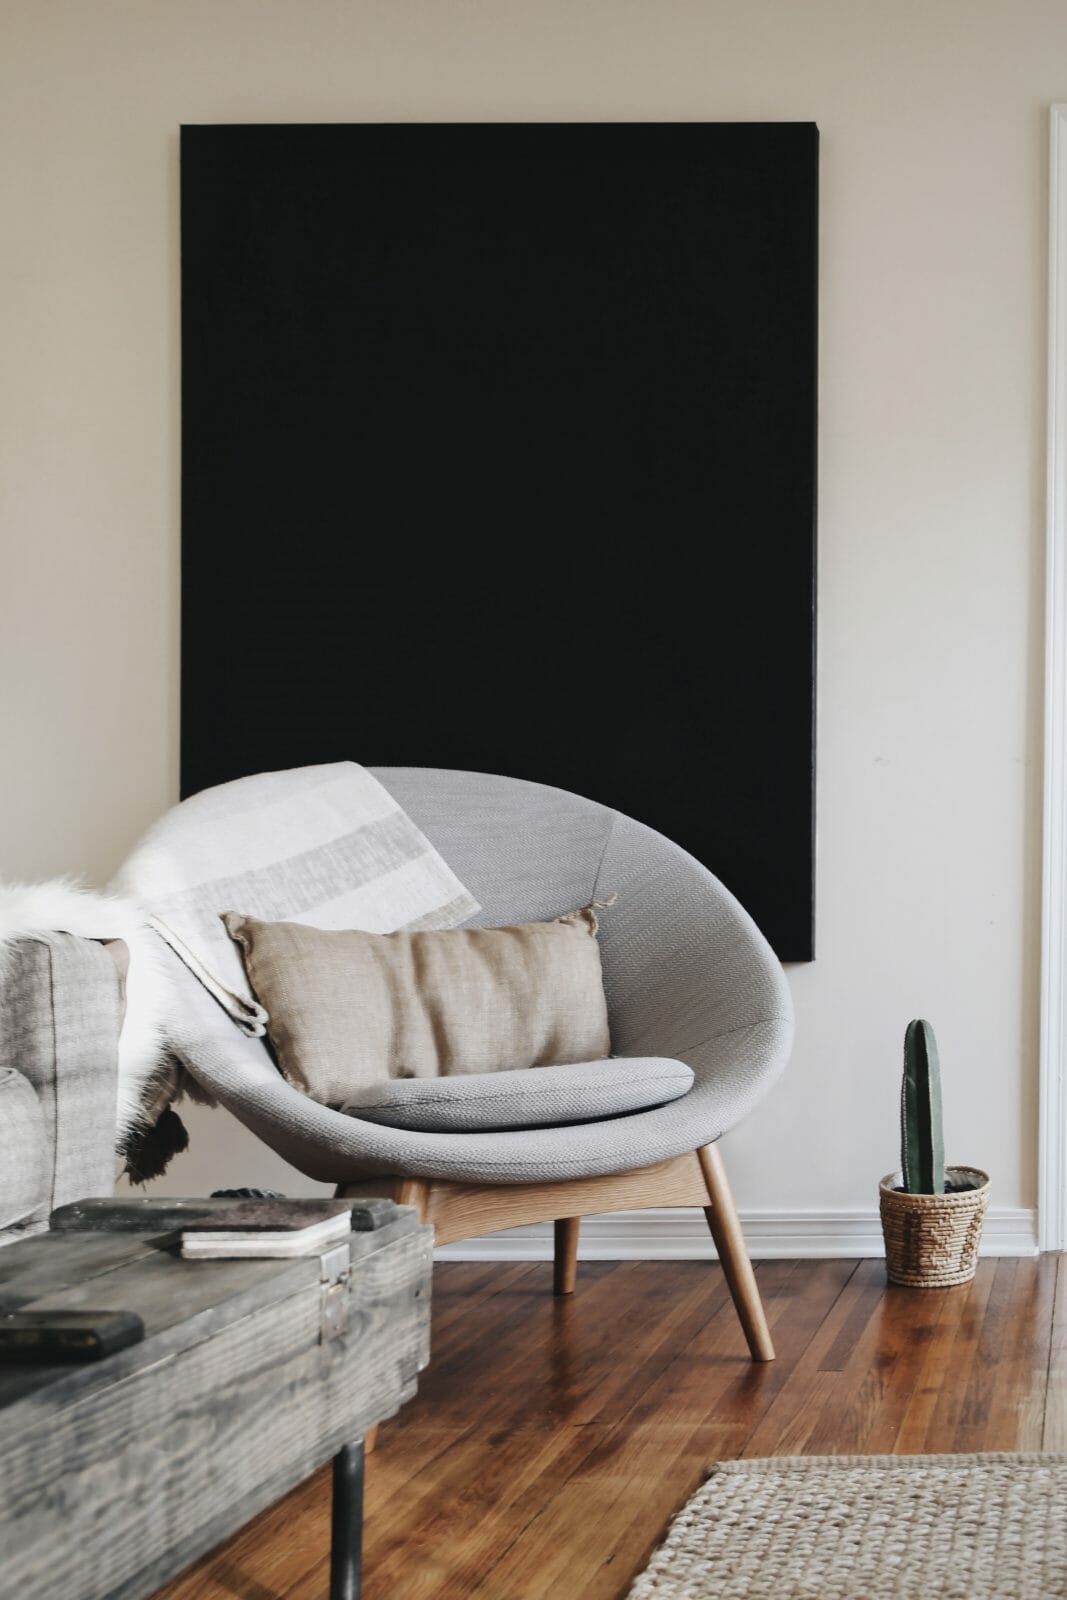 Picture of grey chair in room for Real Estate News for Investors Podcast Episode #760